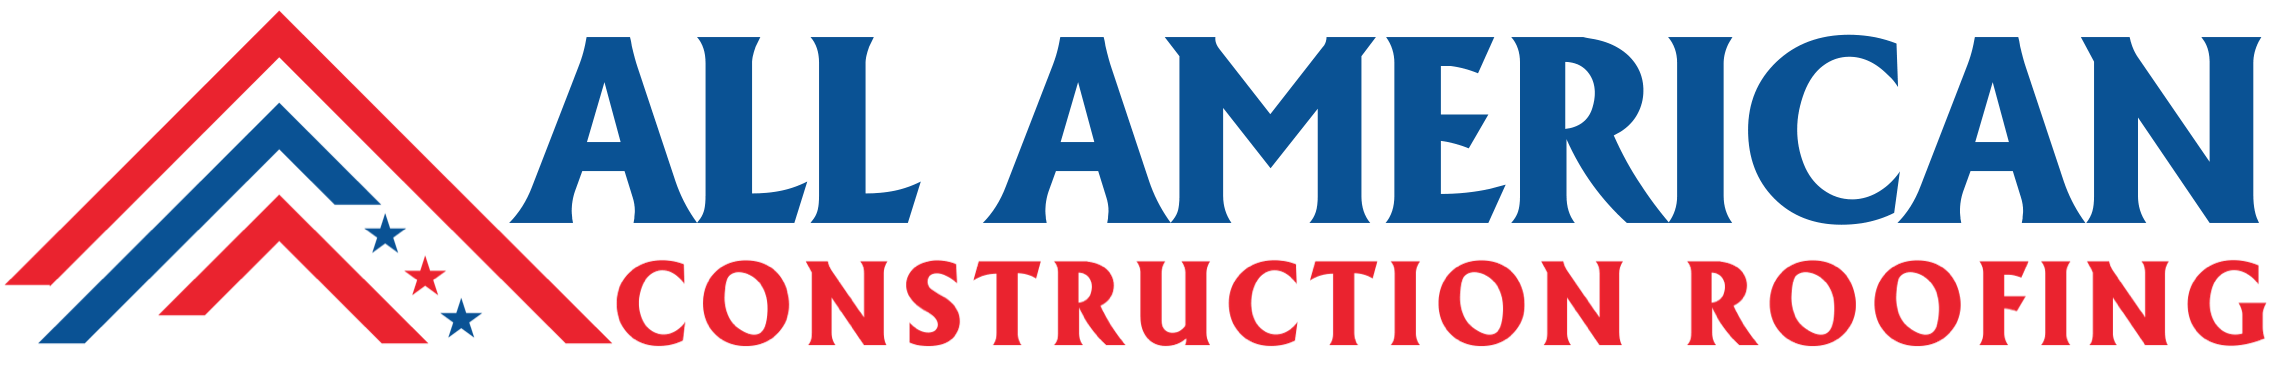 All American Construction Roofing